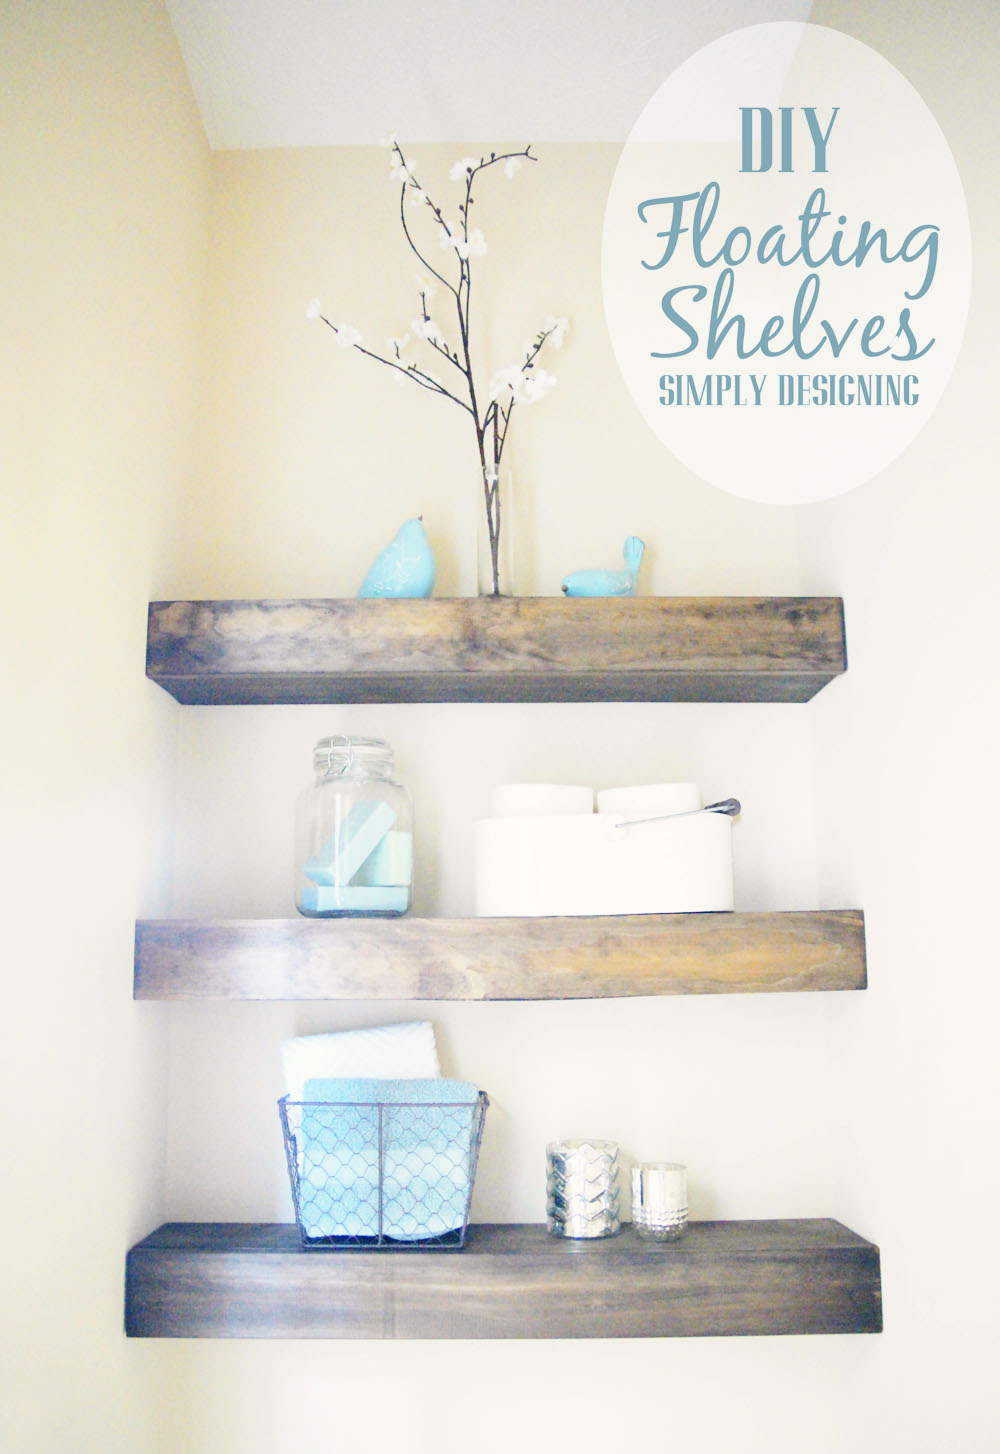 diy floating shelves how measure cut and install wood shelf plans are really easy make they the perfect sticky back flooring command hooks for brick record player ikea cube